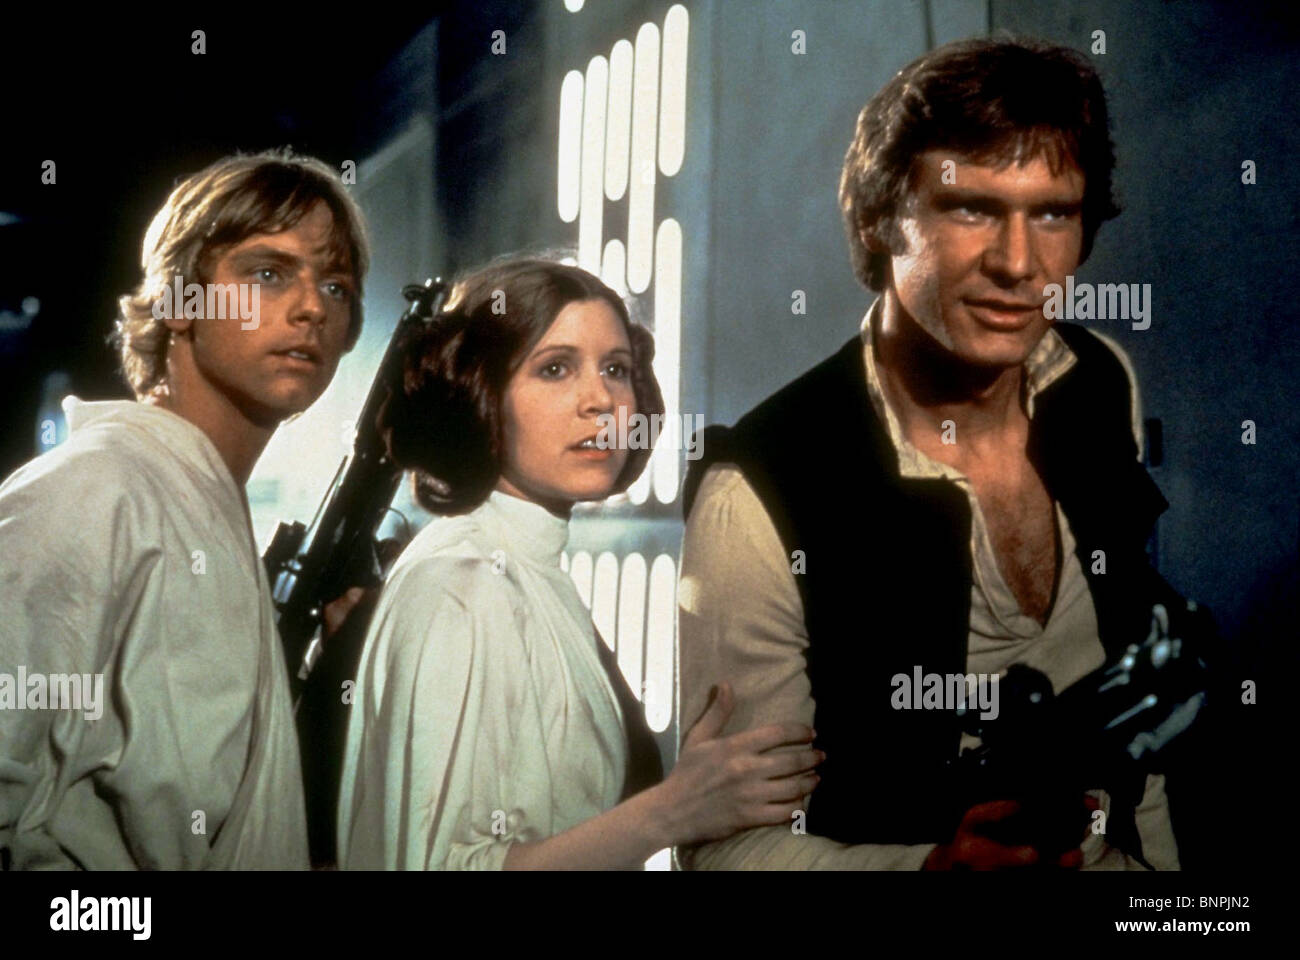 MARK HAMILL CARRIE FISHER HARRISON FORD STAR WARS: EPISODE IV - A NEW HOPE (1977) - Stock Image